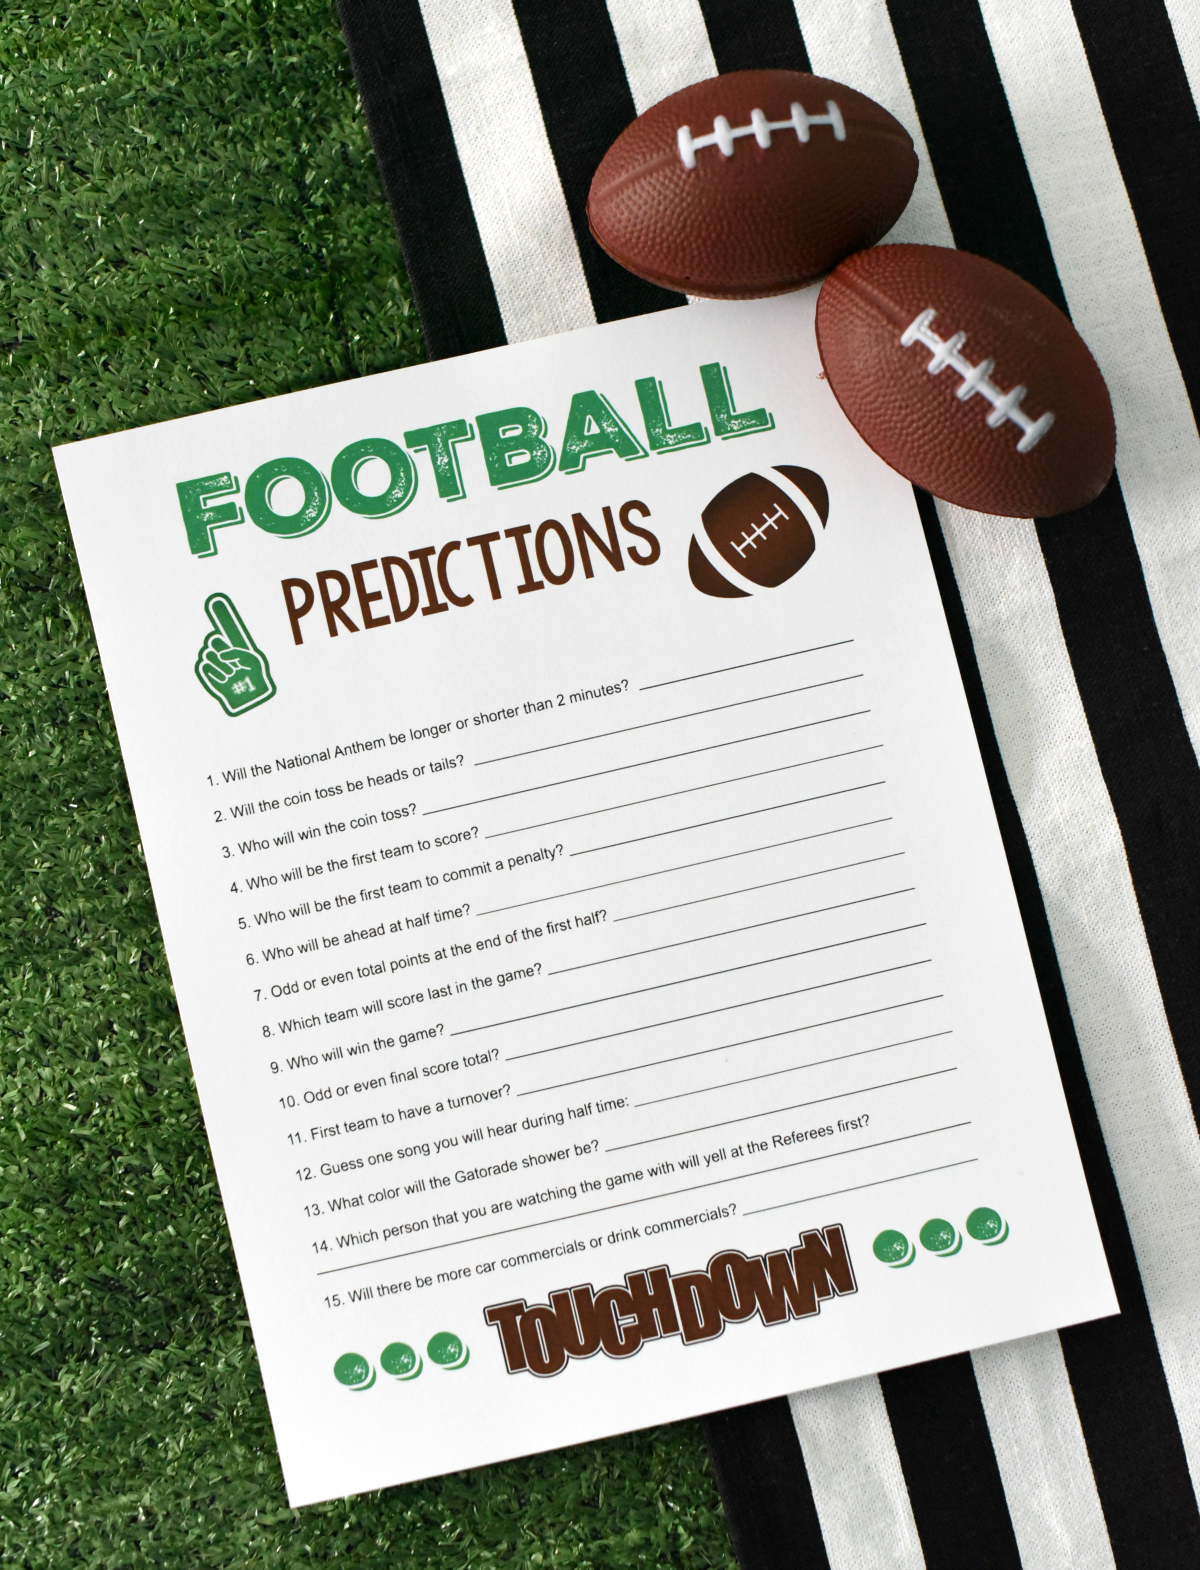 Super Bowl Party Games-Prop Bets Football Predictions